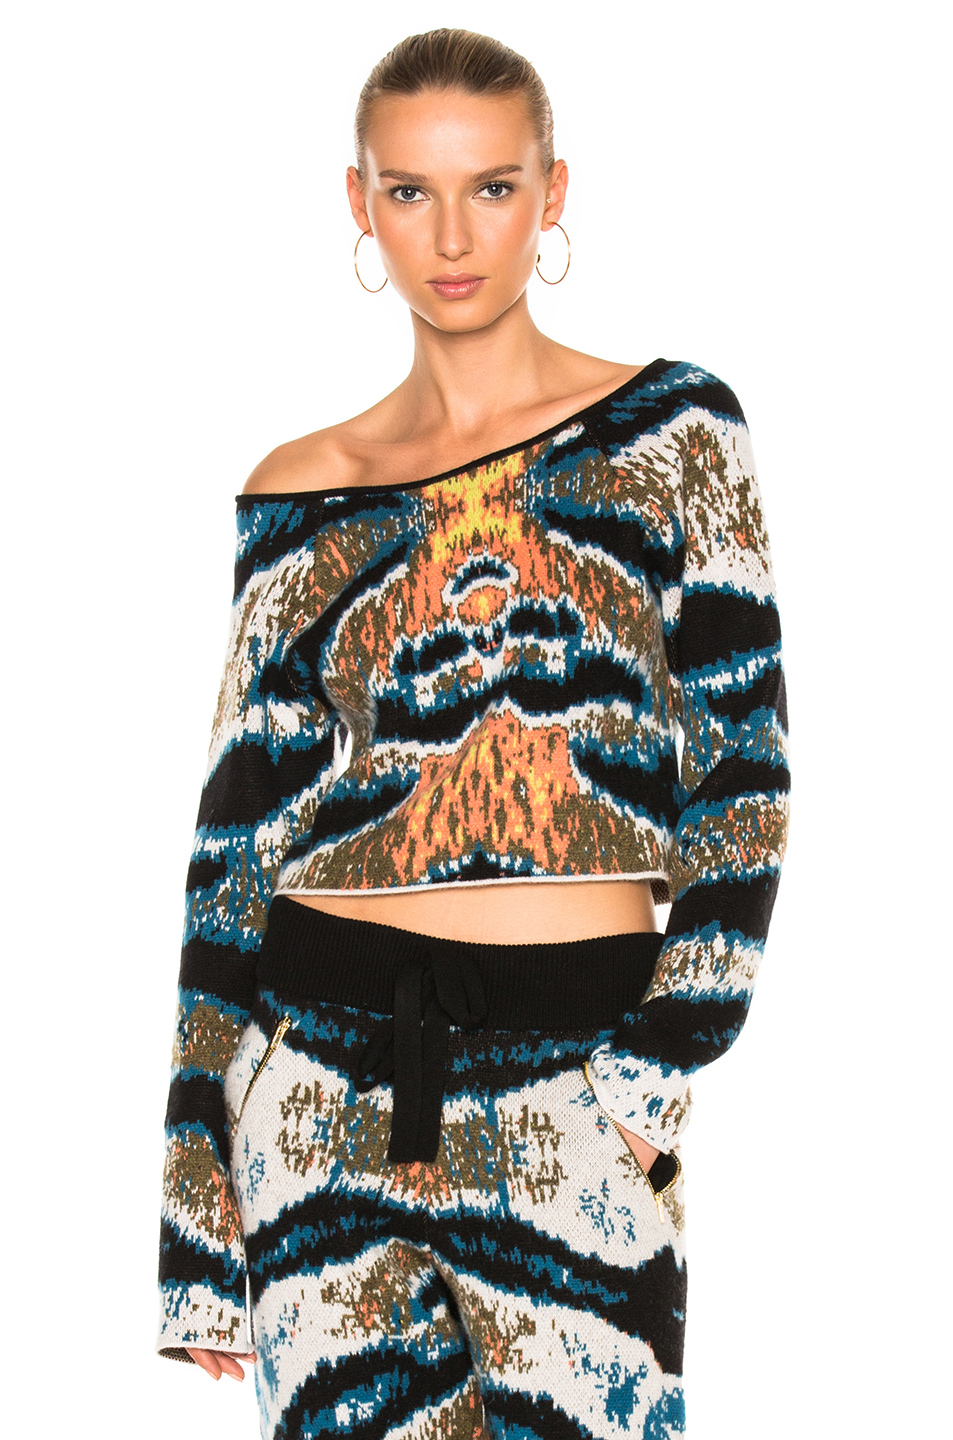 Baja East Cashmere Cropped Tiger Stripe Sweater In Abstract,Black,Blue,Green,White